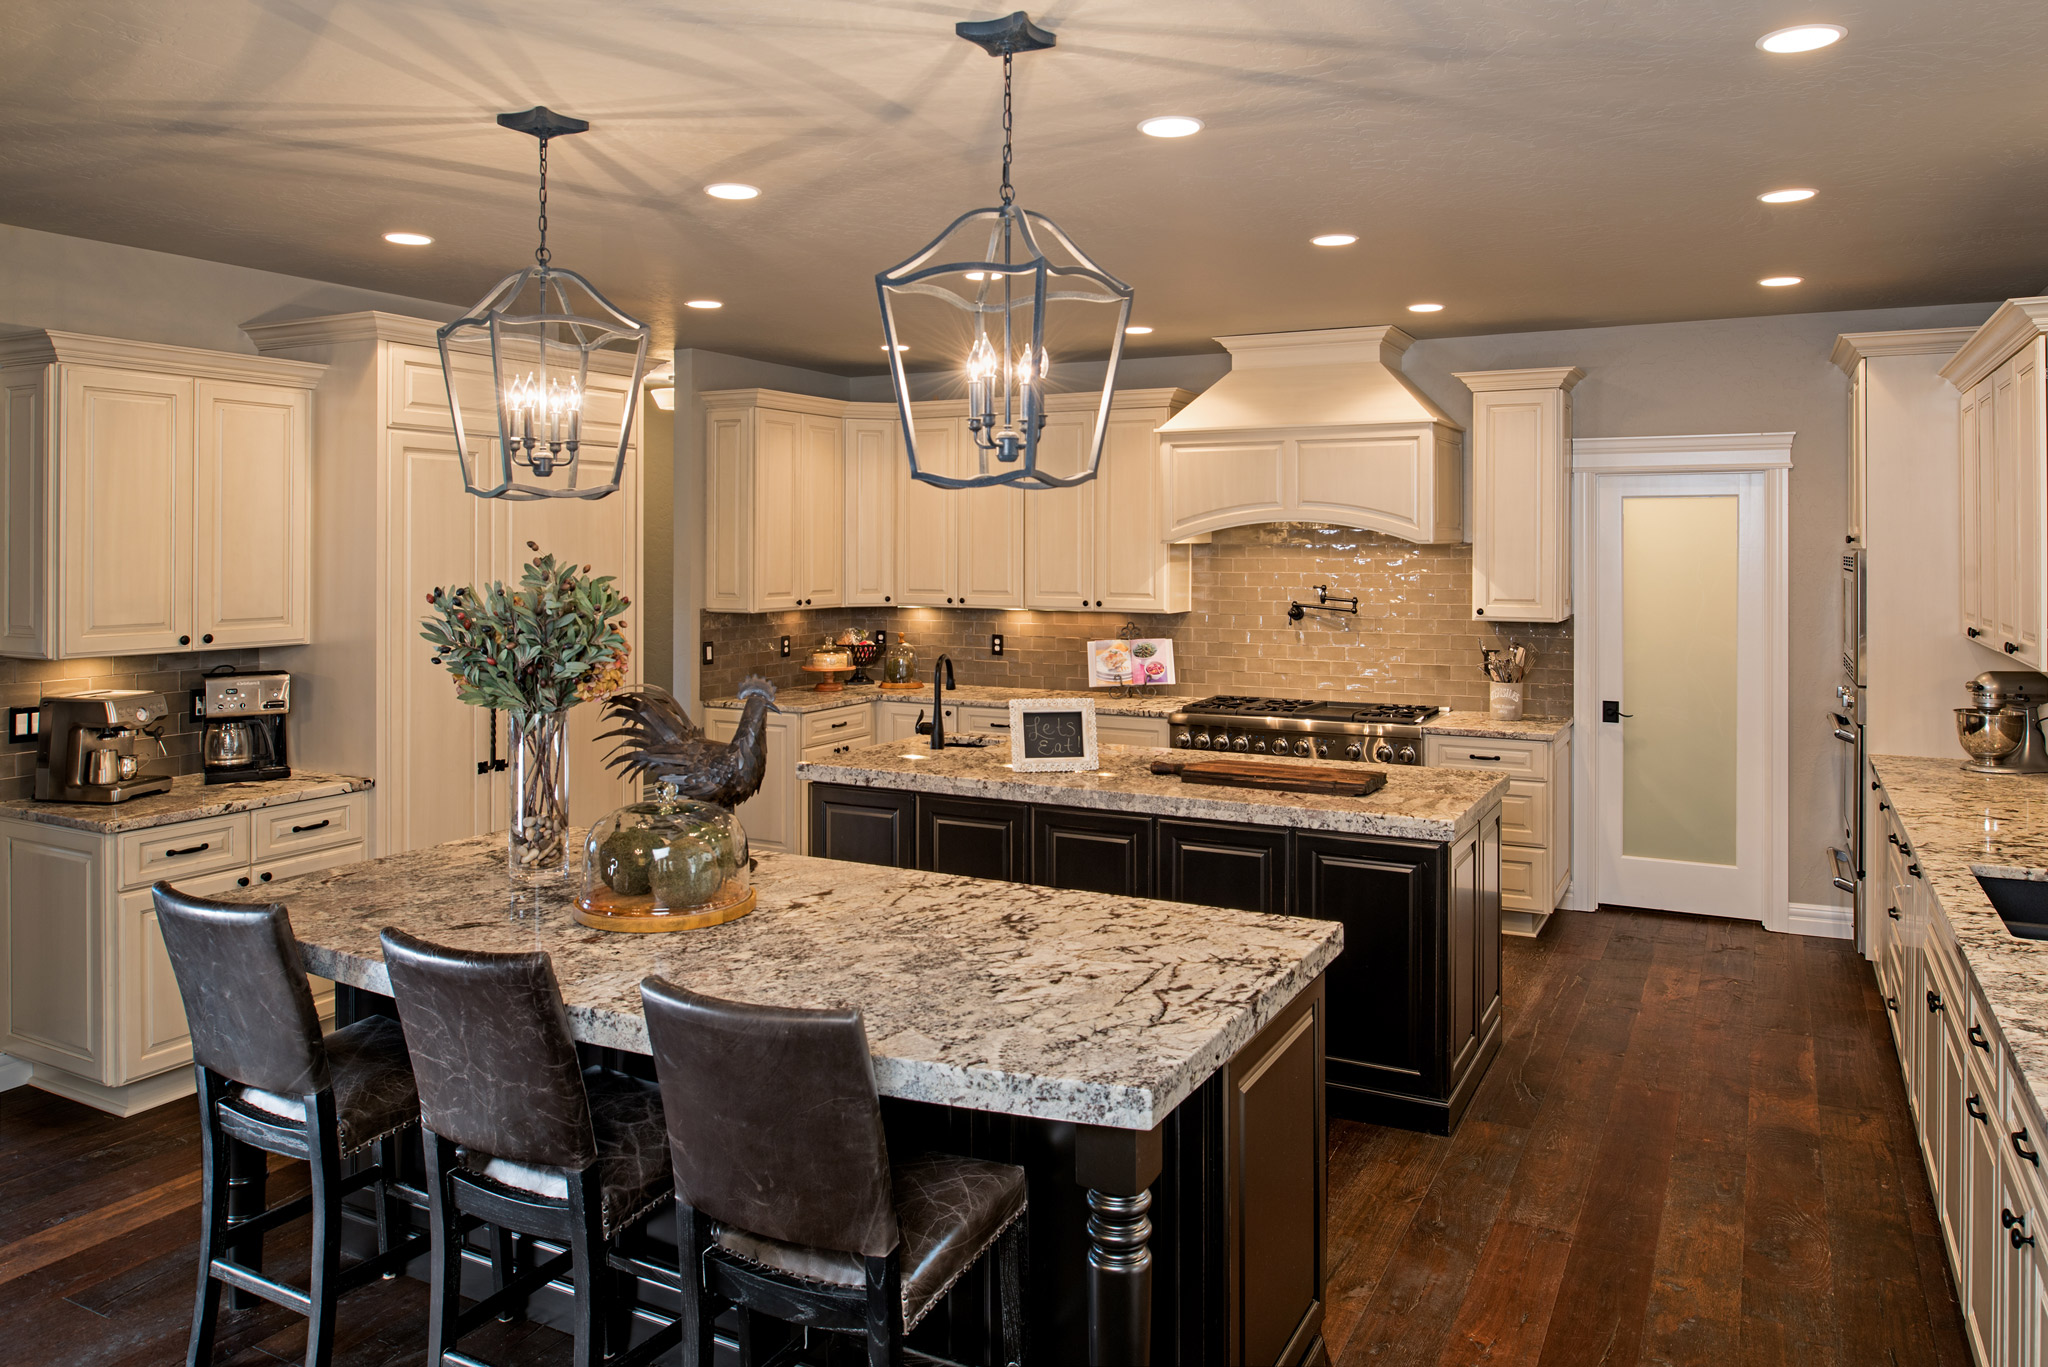 Going Grand - A Couples Dream Kitchen